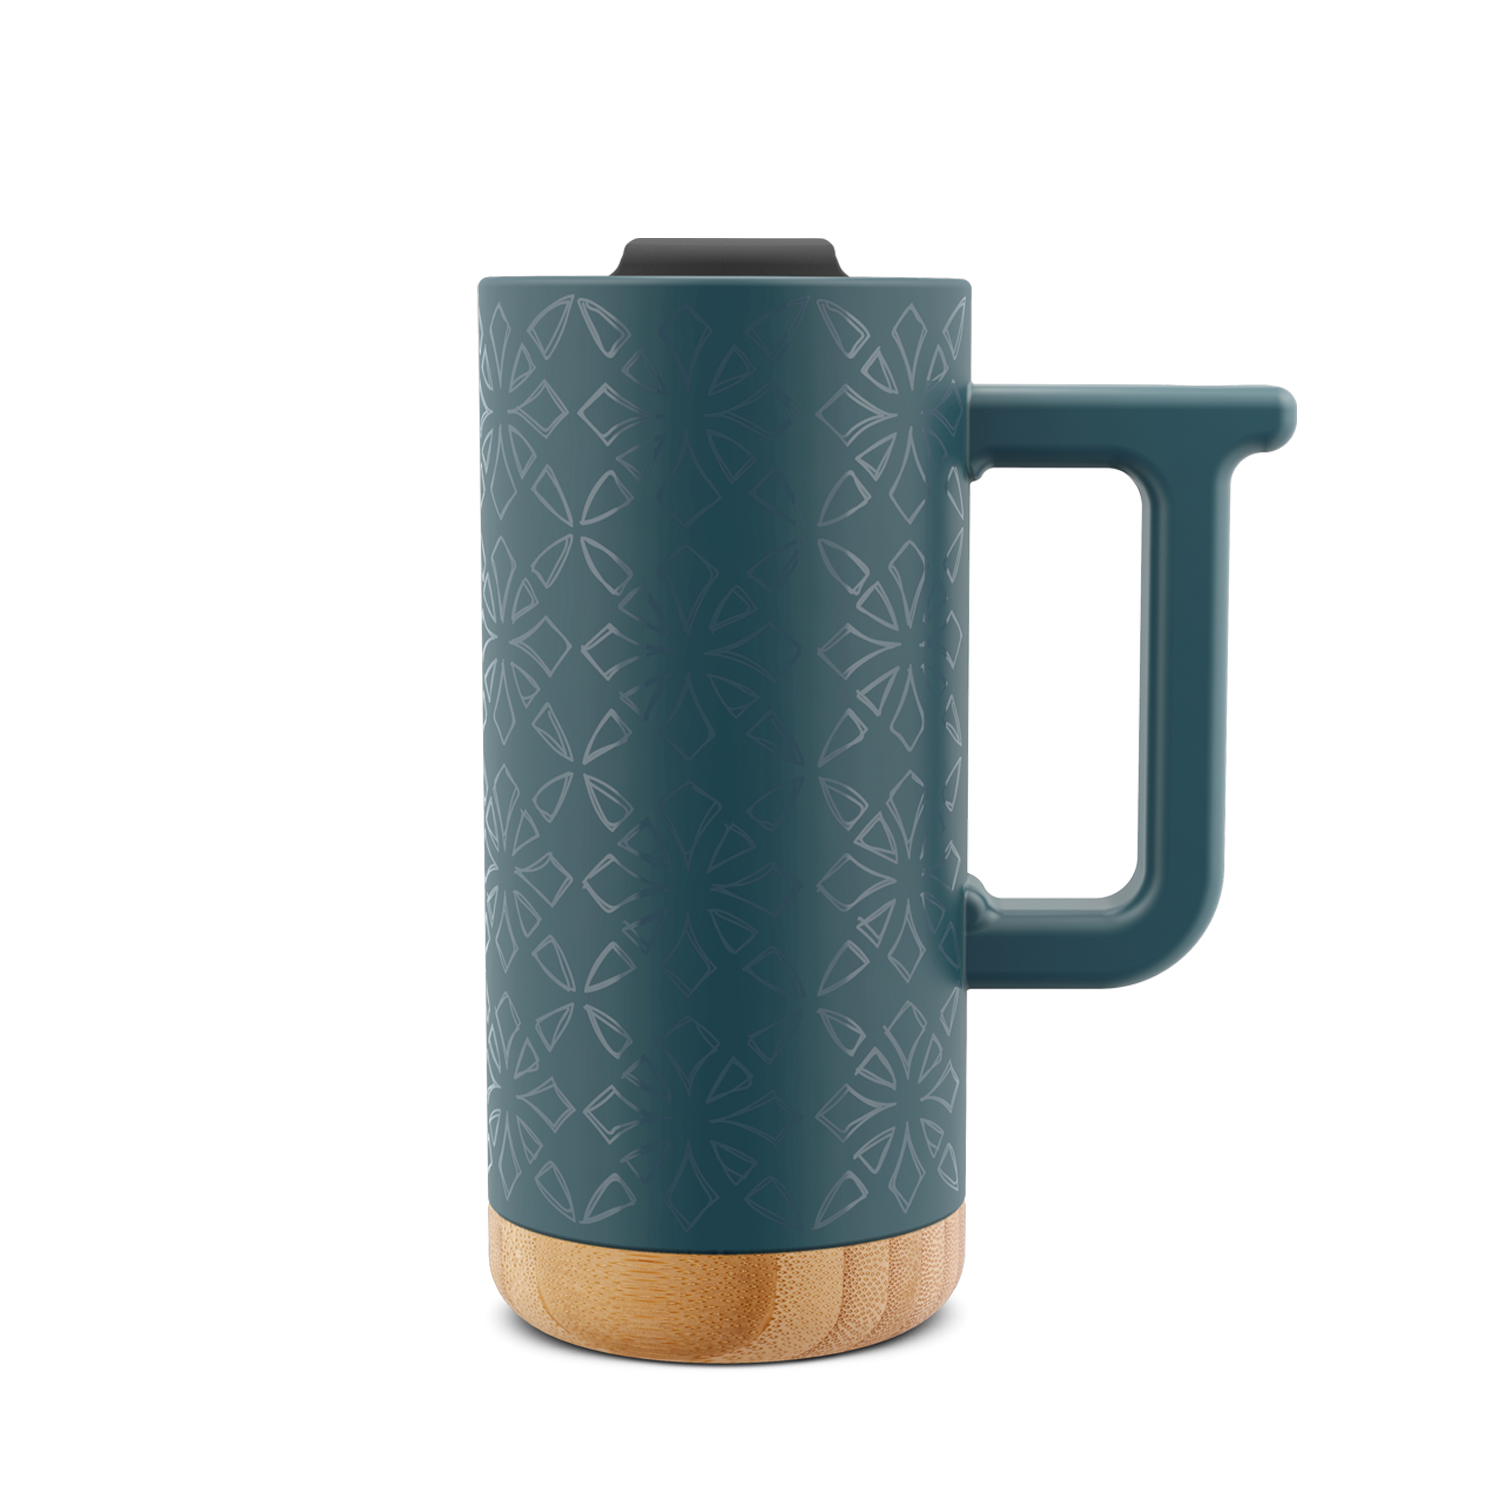 Aspen 16oz Ceramic Travel Mug